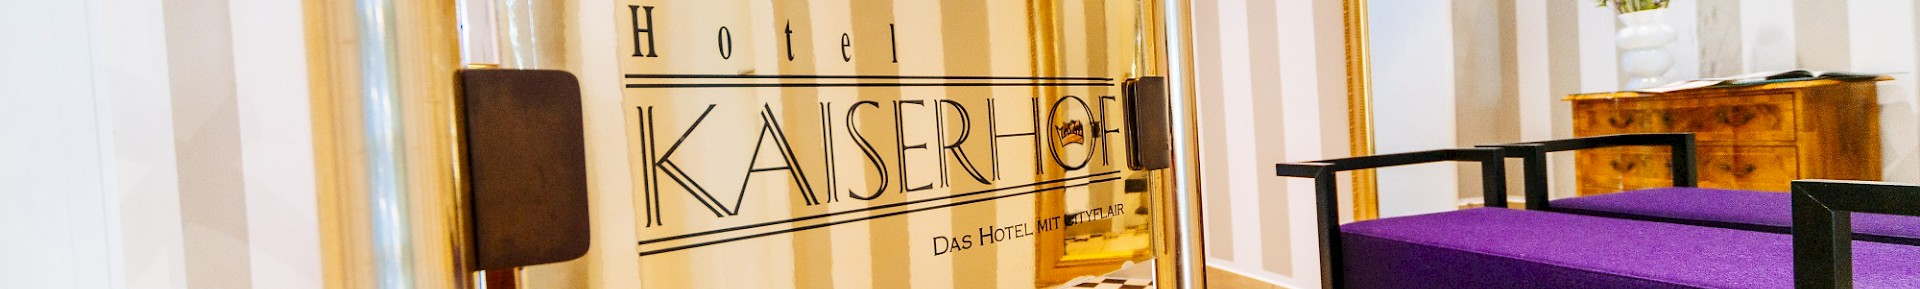 The Kaiserhof is a stylisch hotel between the city center and the train station.